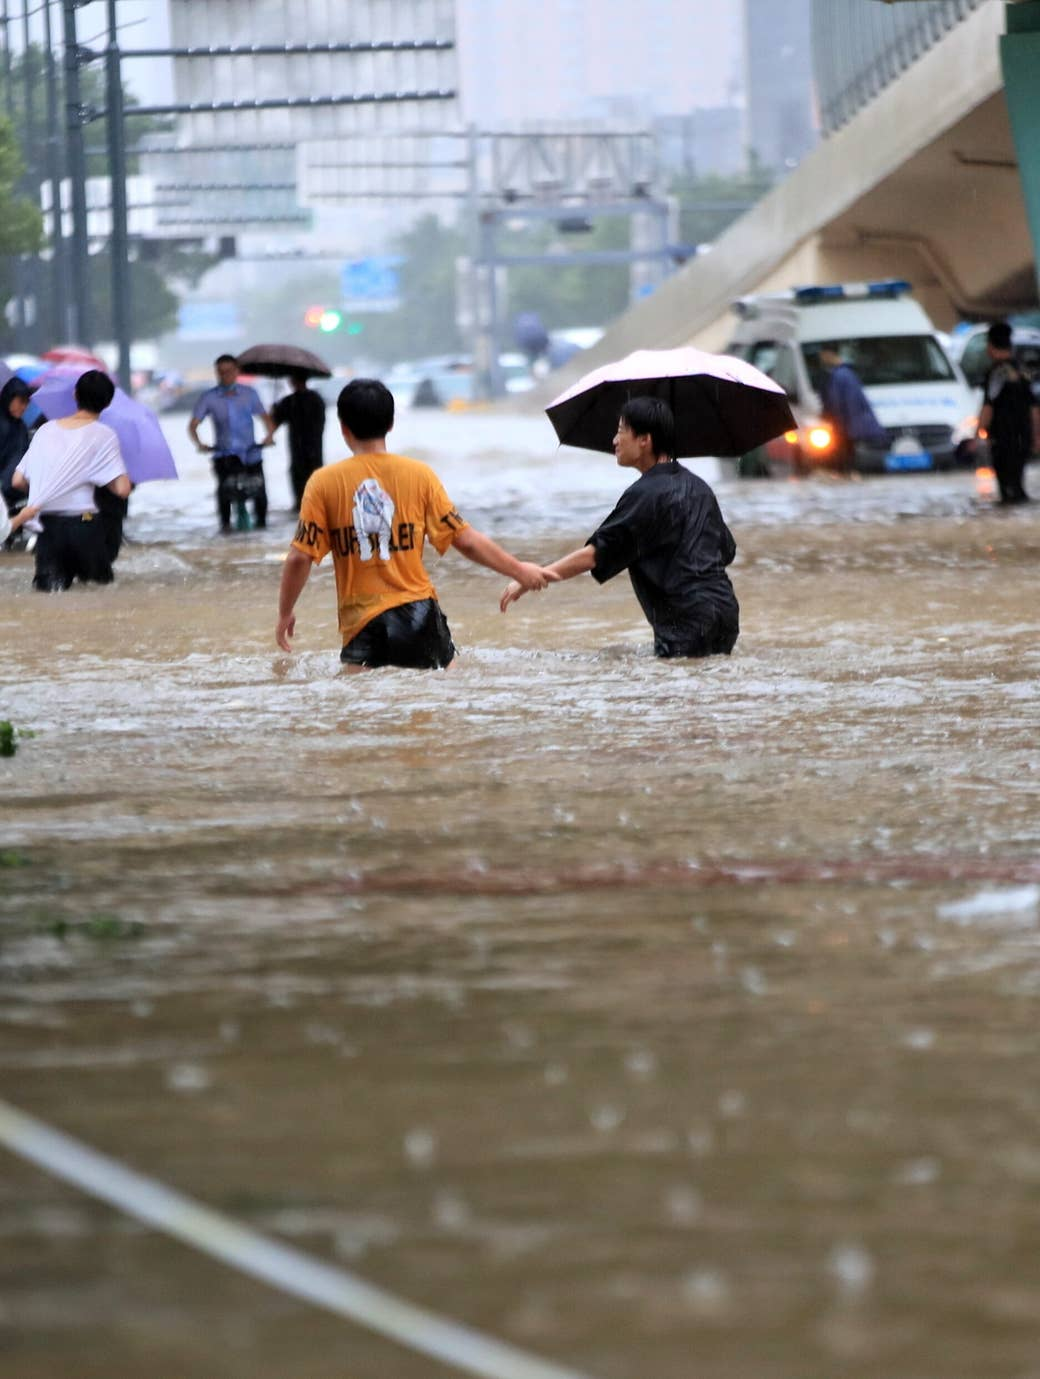 People in China walk through waist-high water due to recent flooding, one carries an umbrella